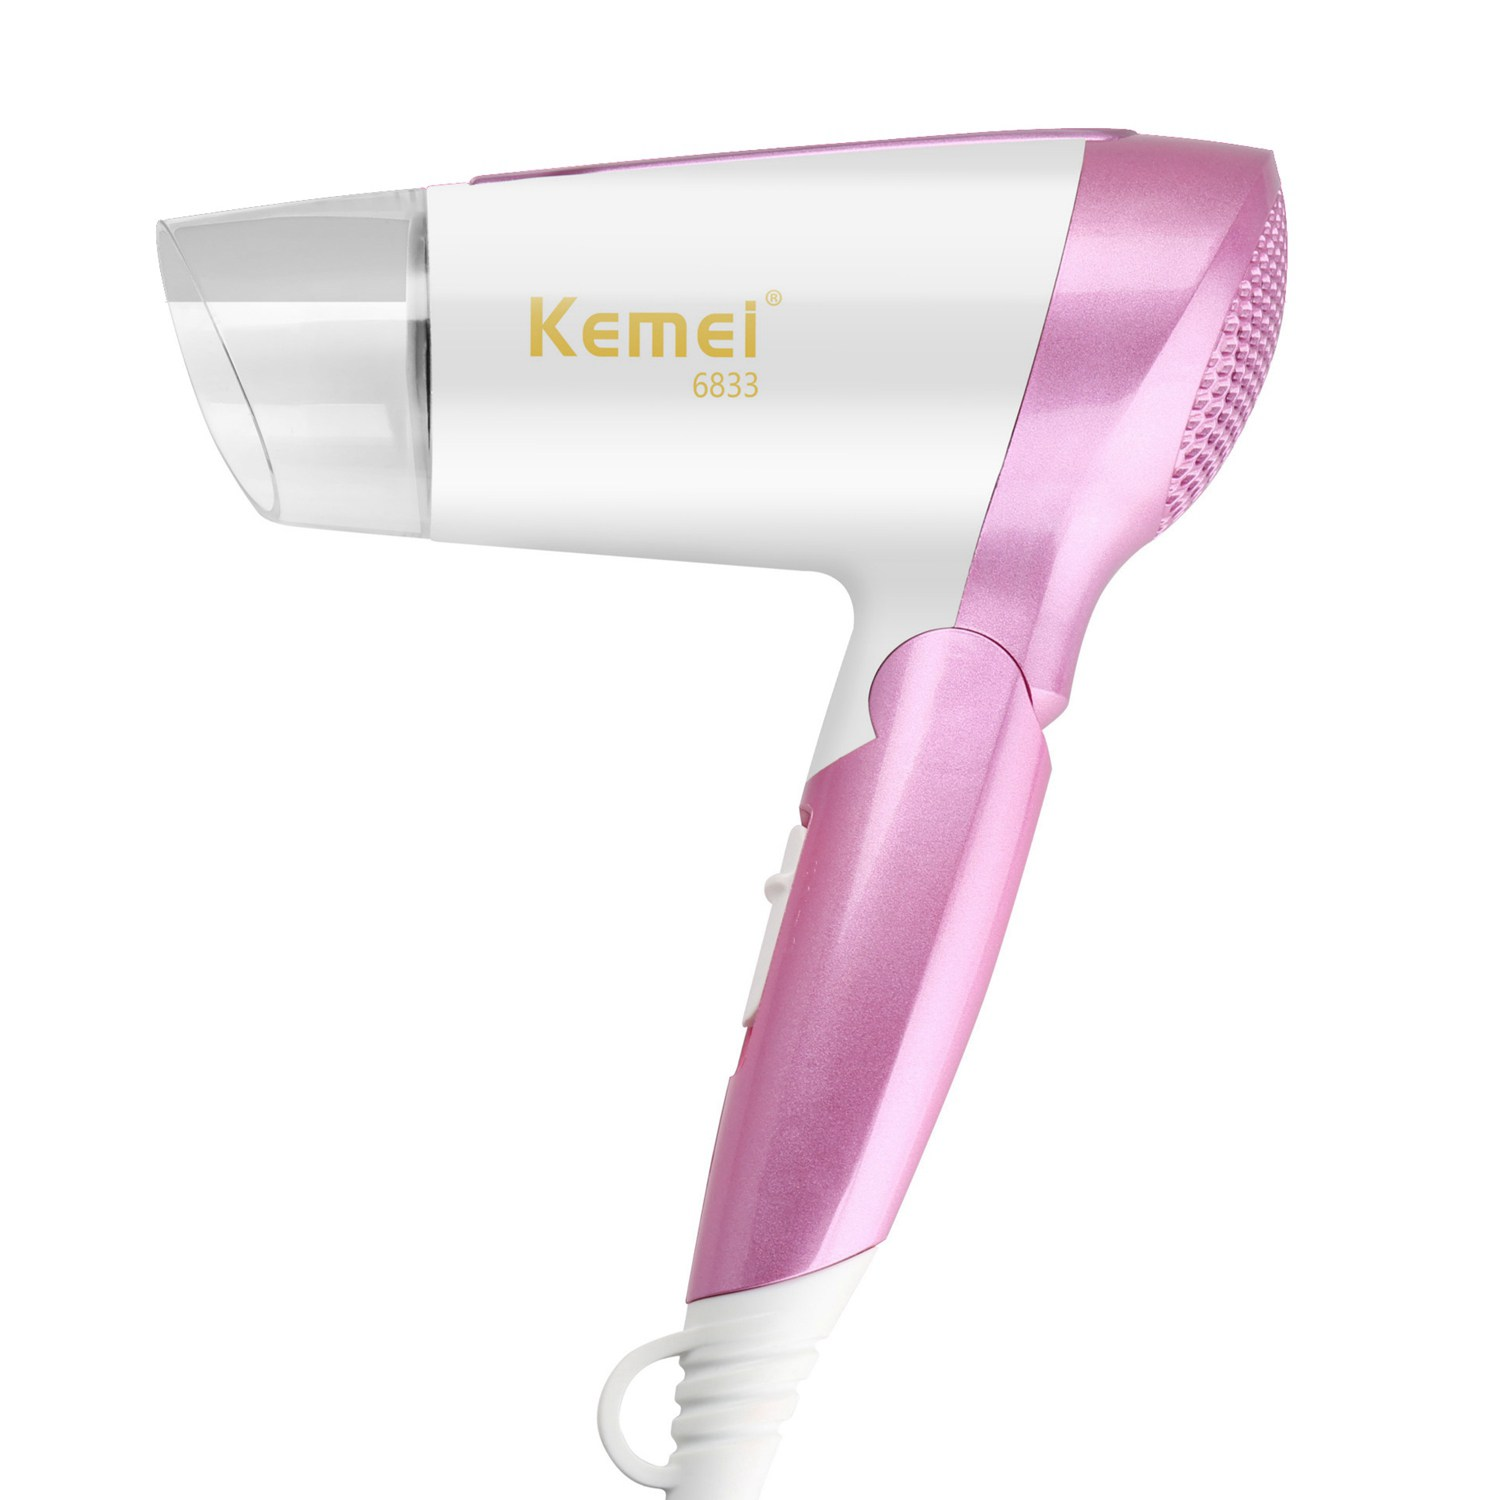 KM-6833 Portable mini hair dryer 1600W ultra-quiet anion Personal care appliances hot and cold dual-function switch hair dryer km 8856 brand high power hair dryer 2000w professional stylist hair dryer eu plug hot and cold dual function switch hair dryer